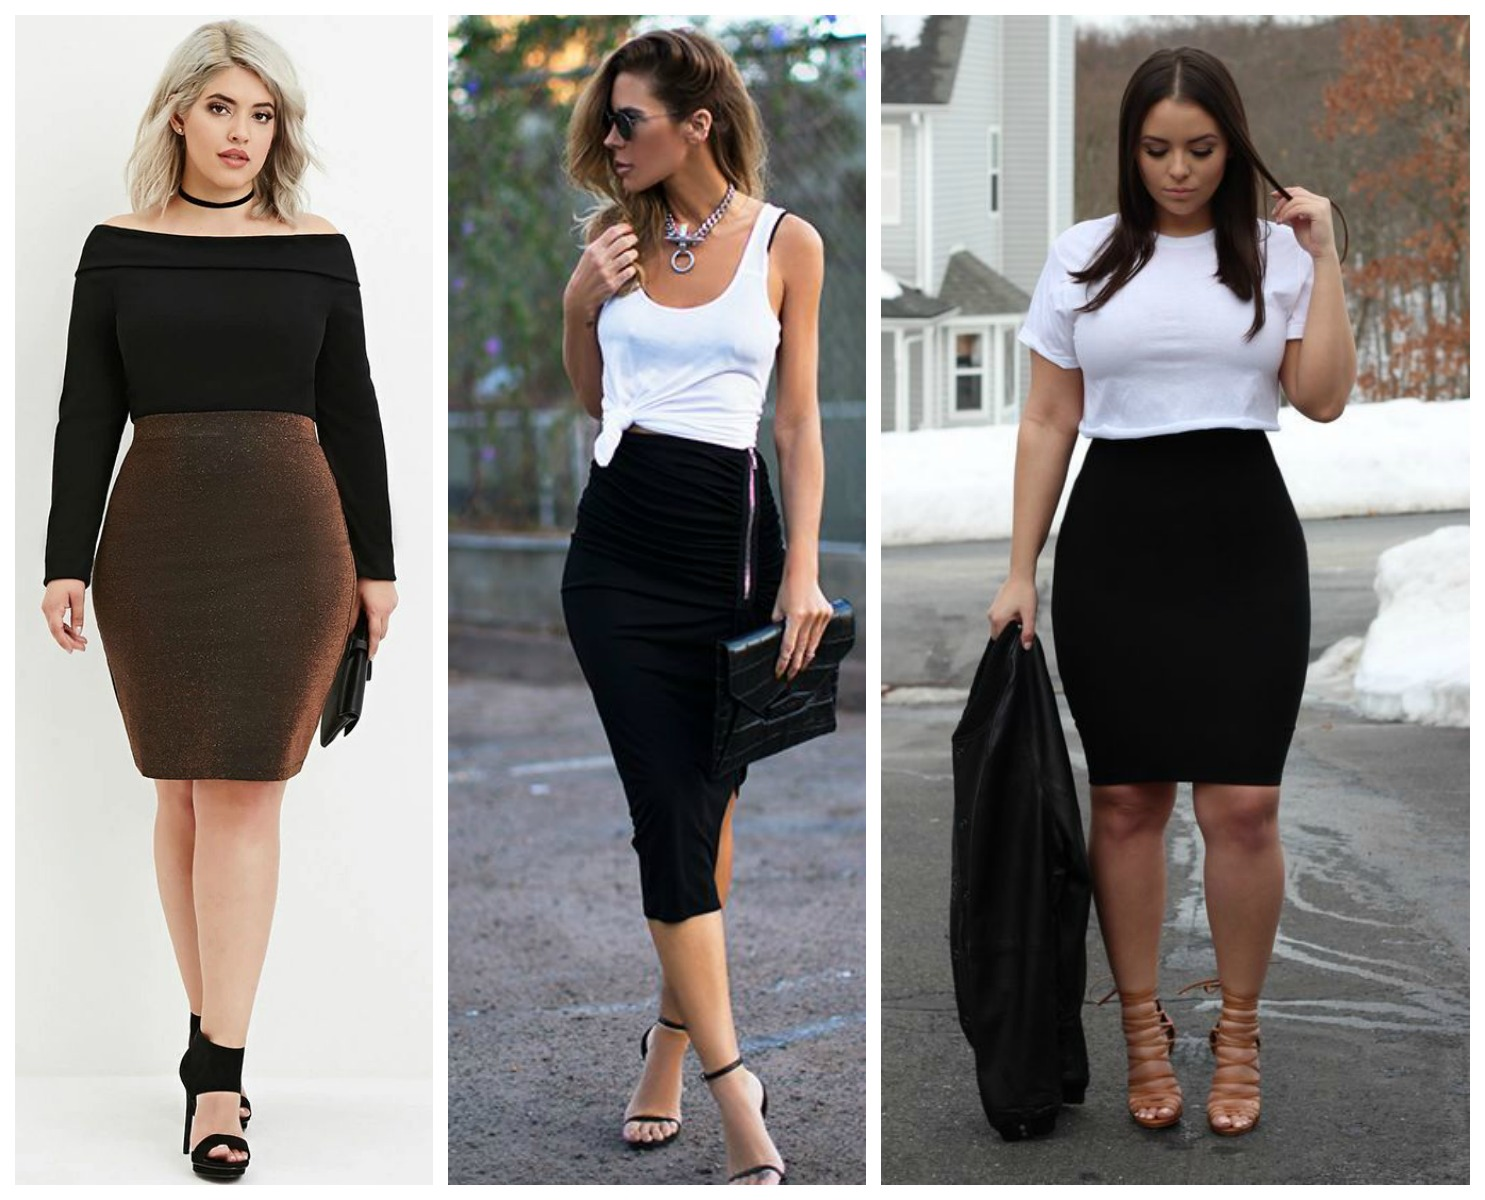 How To Choose The Best Skin Tight Dress For Your Body Type Mythirtyspot